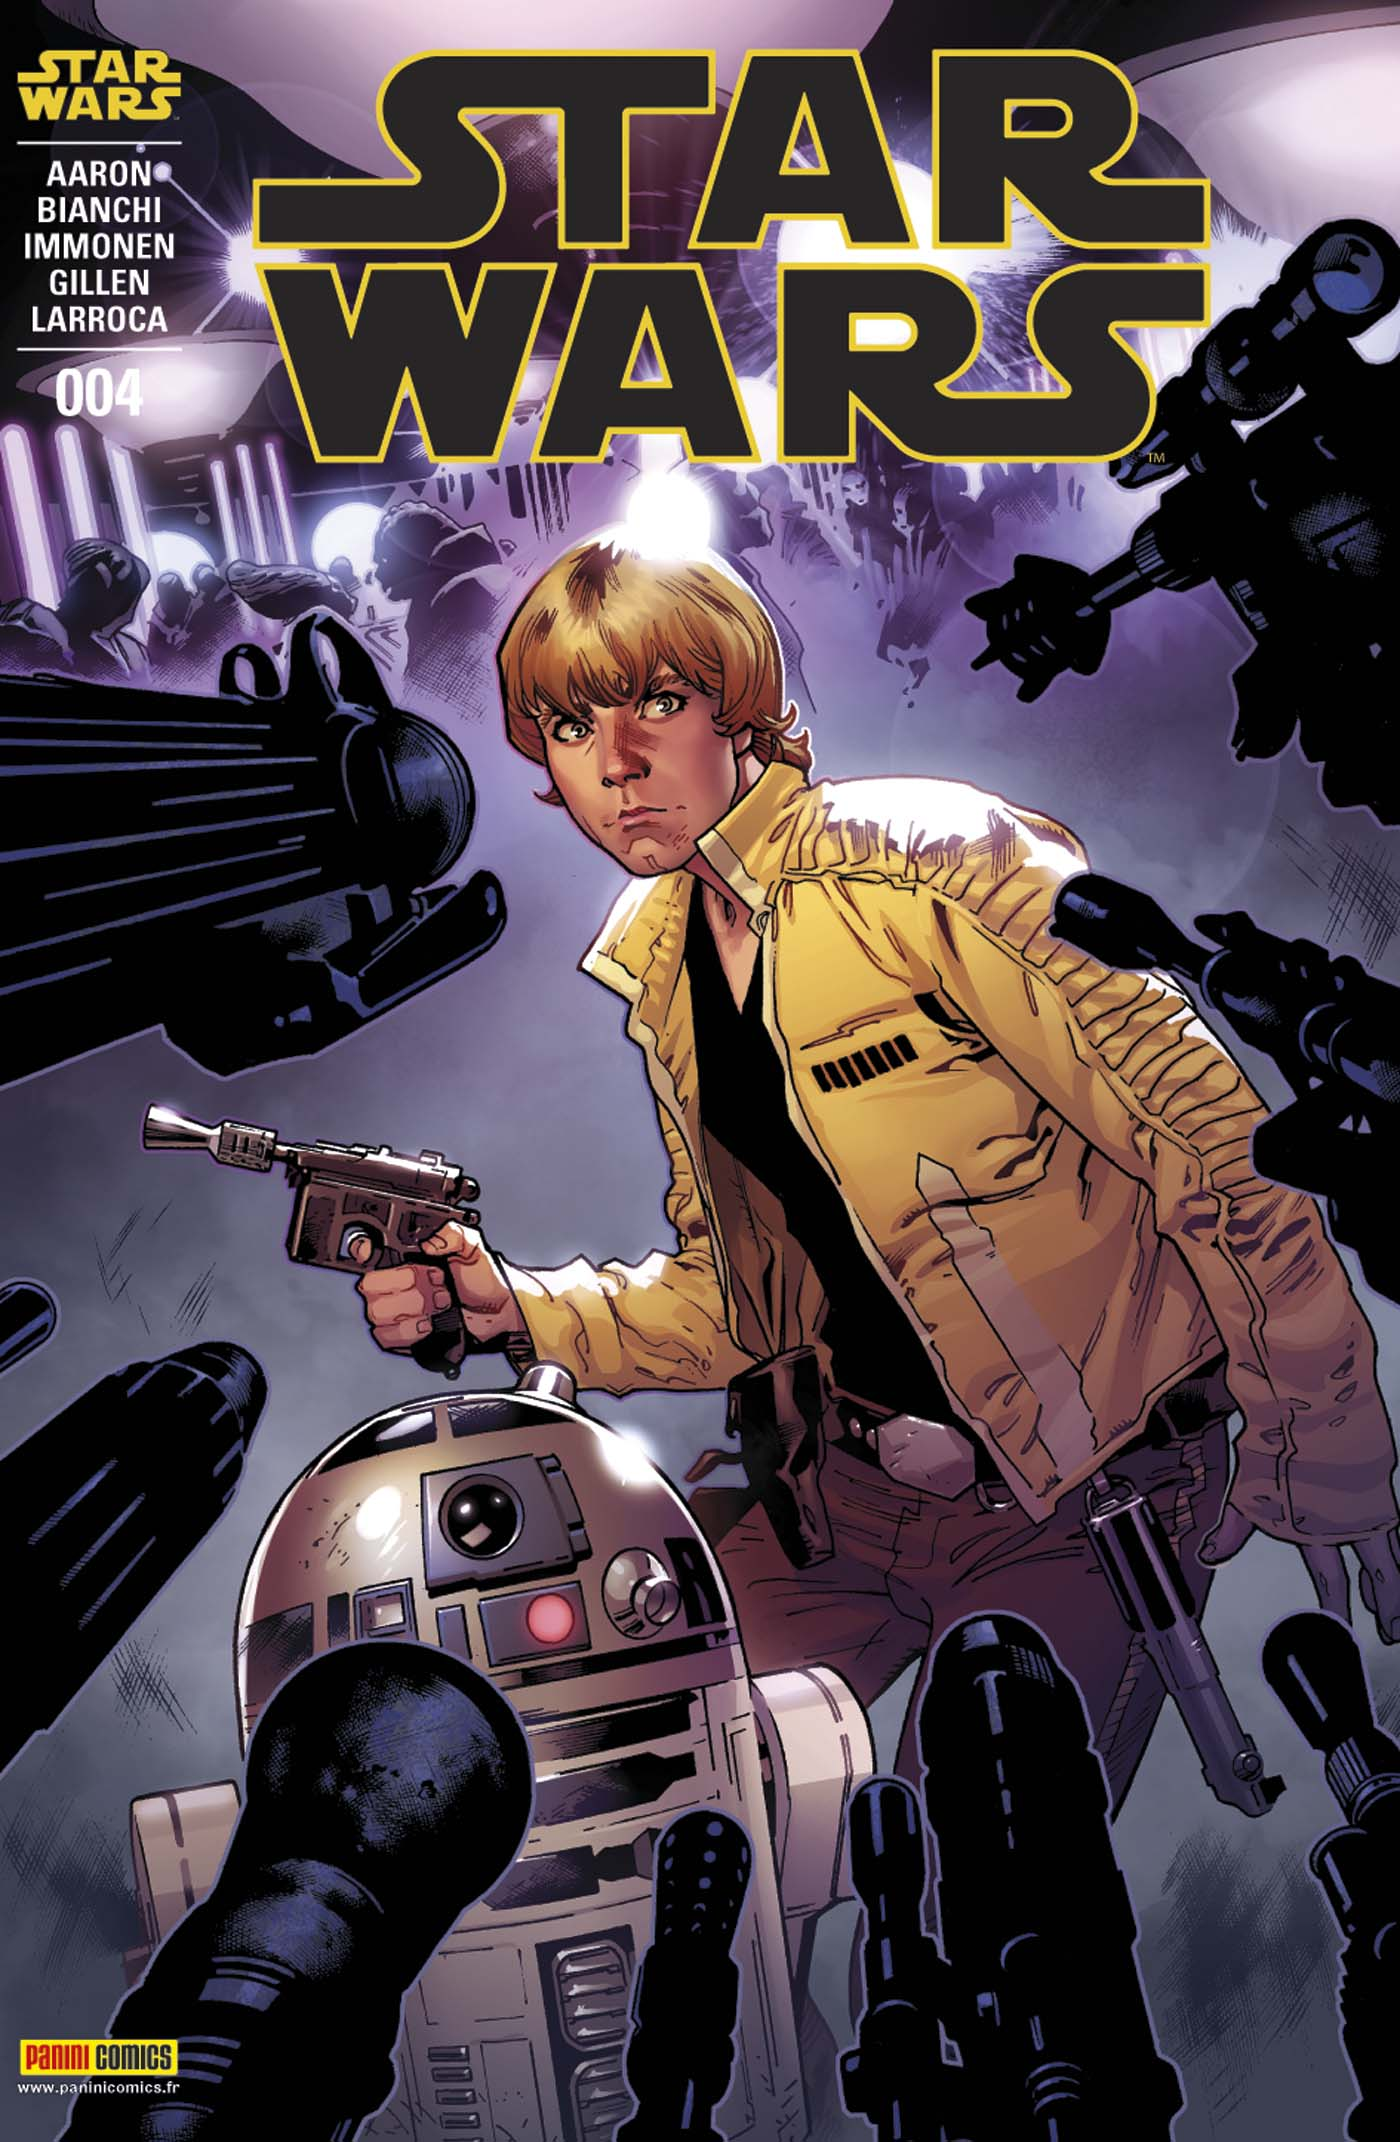 Star Wars 4 - Couverture A : (Stuart Immonen – tirage 50%)